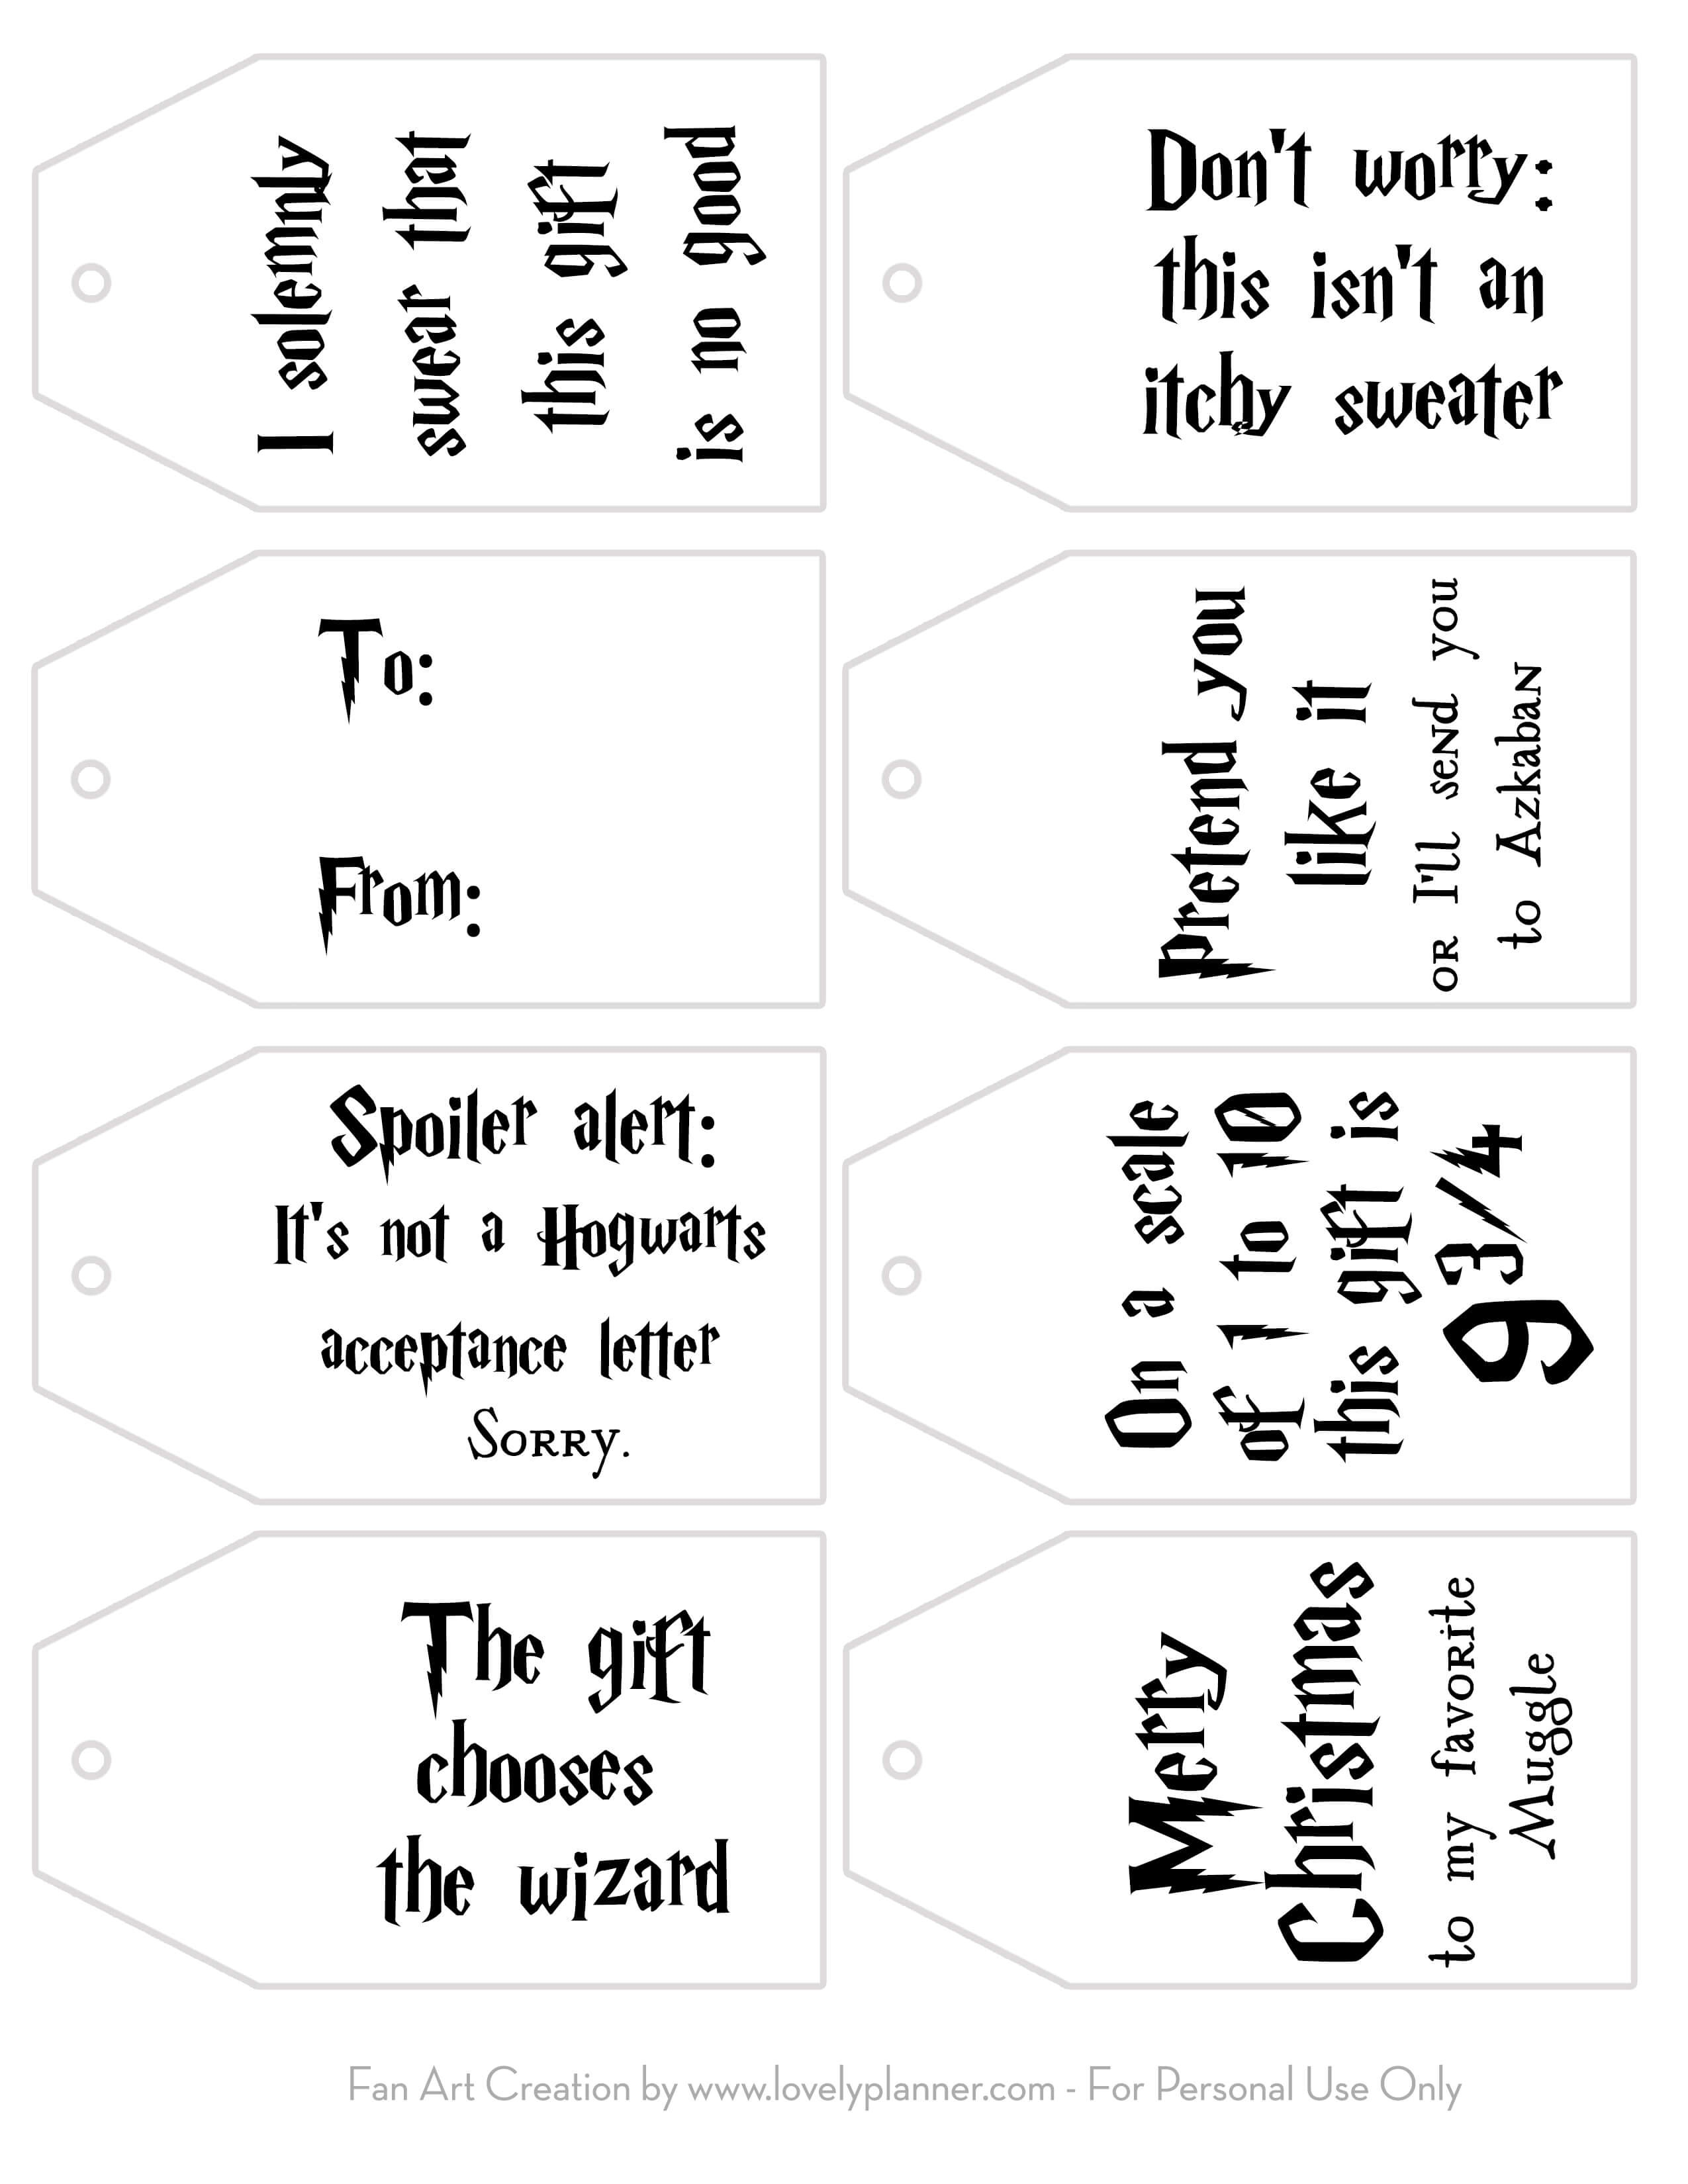 Free Printable Harry Potter Christmas Gift Tags - Lovely Planner - Free Printable Favor Tags